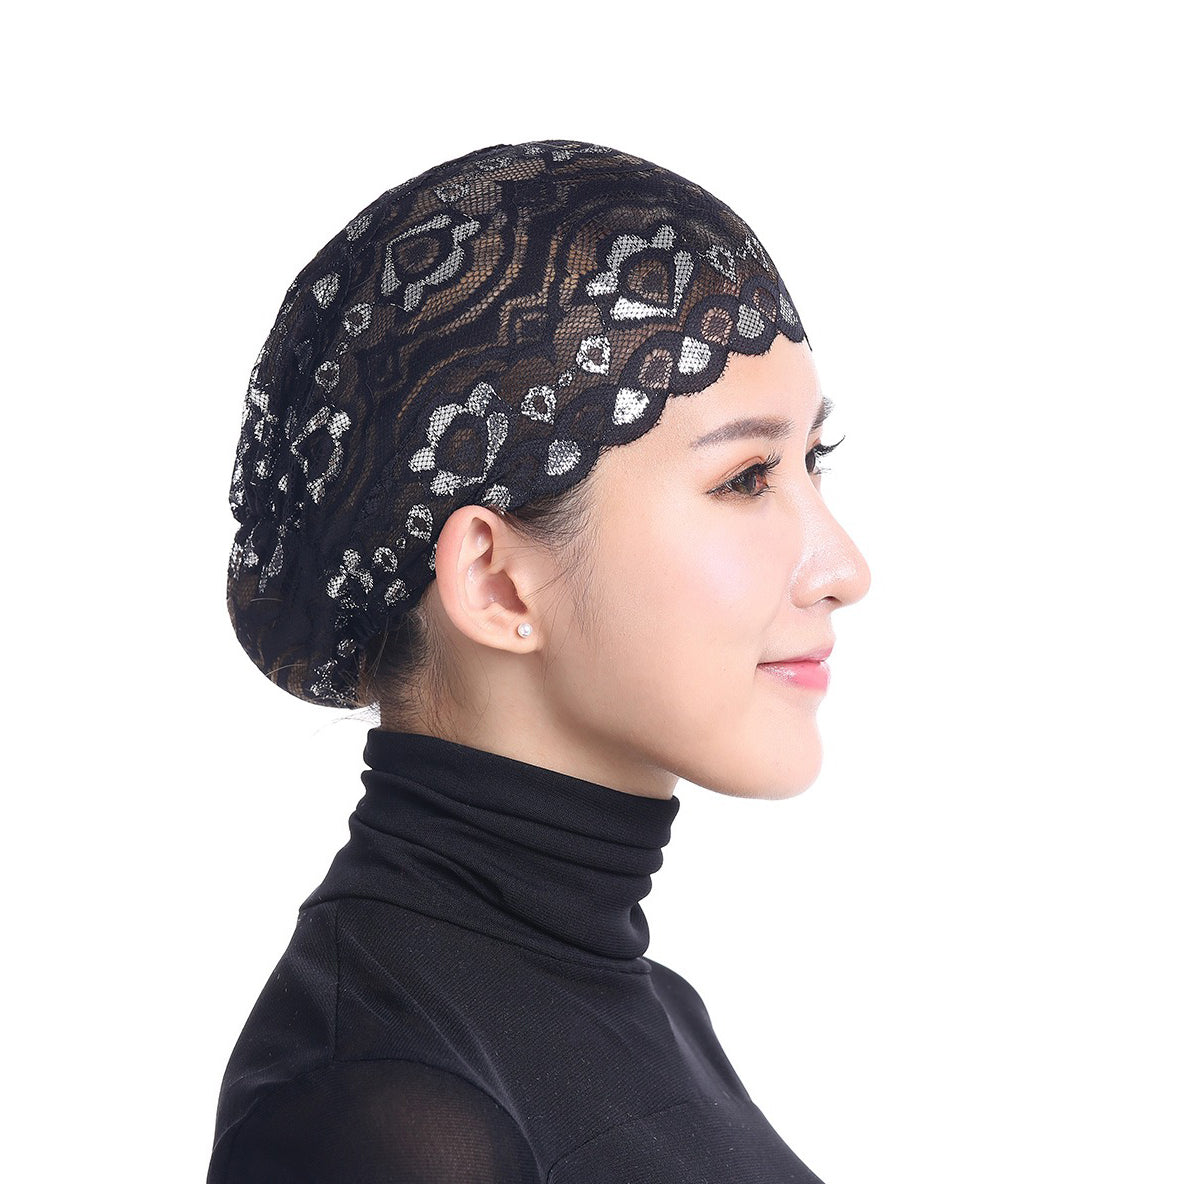 A black lace skull cap designed to be worn under a hijab scarf.